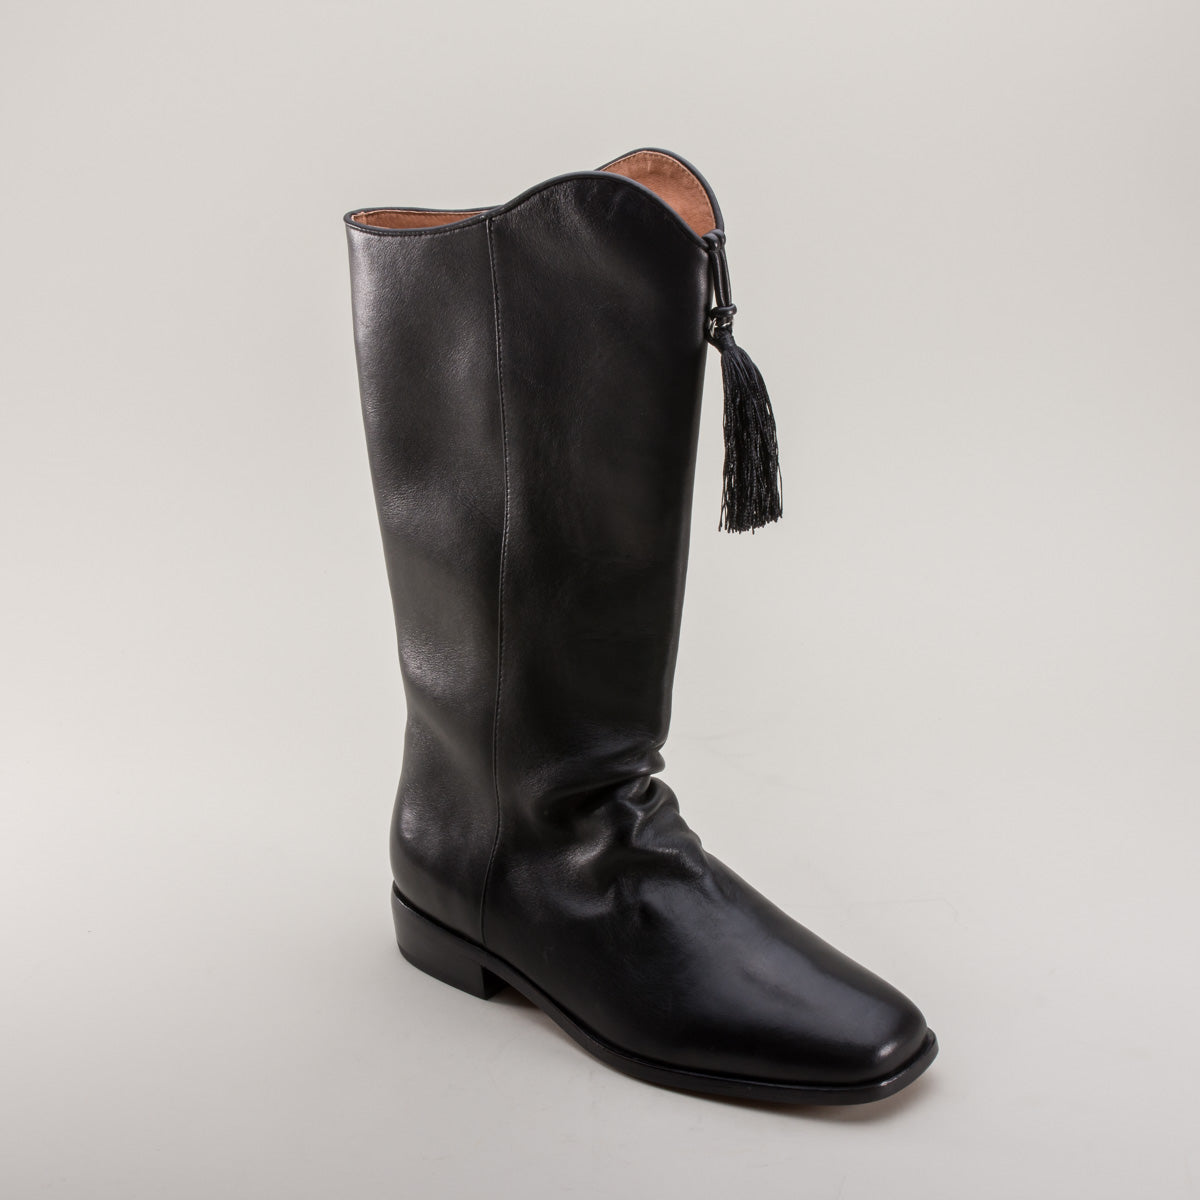 Hessian Men's Georgian Boots (Black) (1790 - 1830)